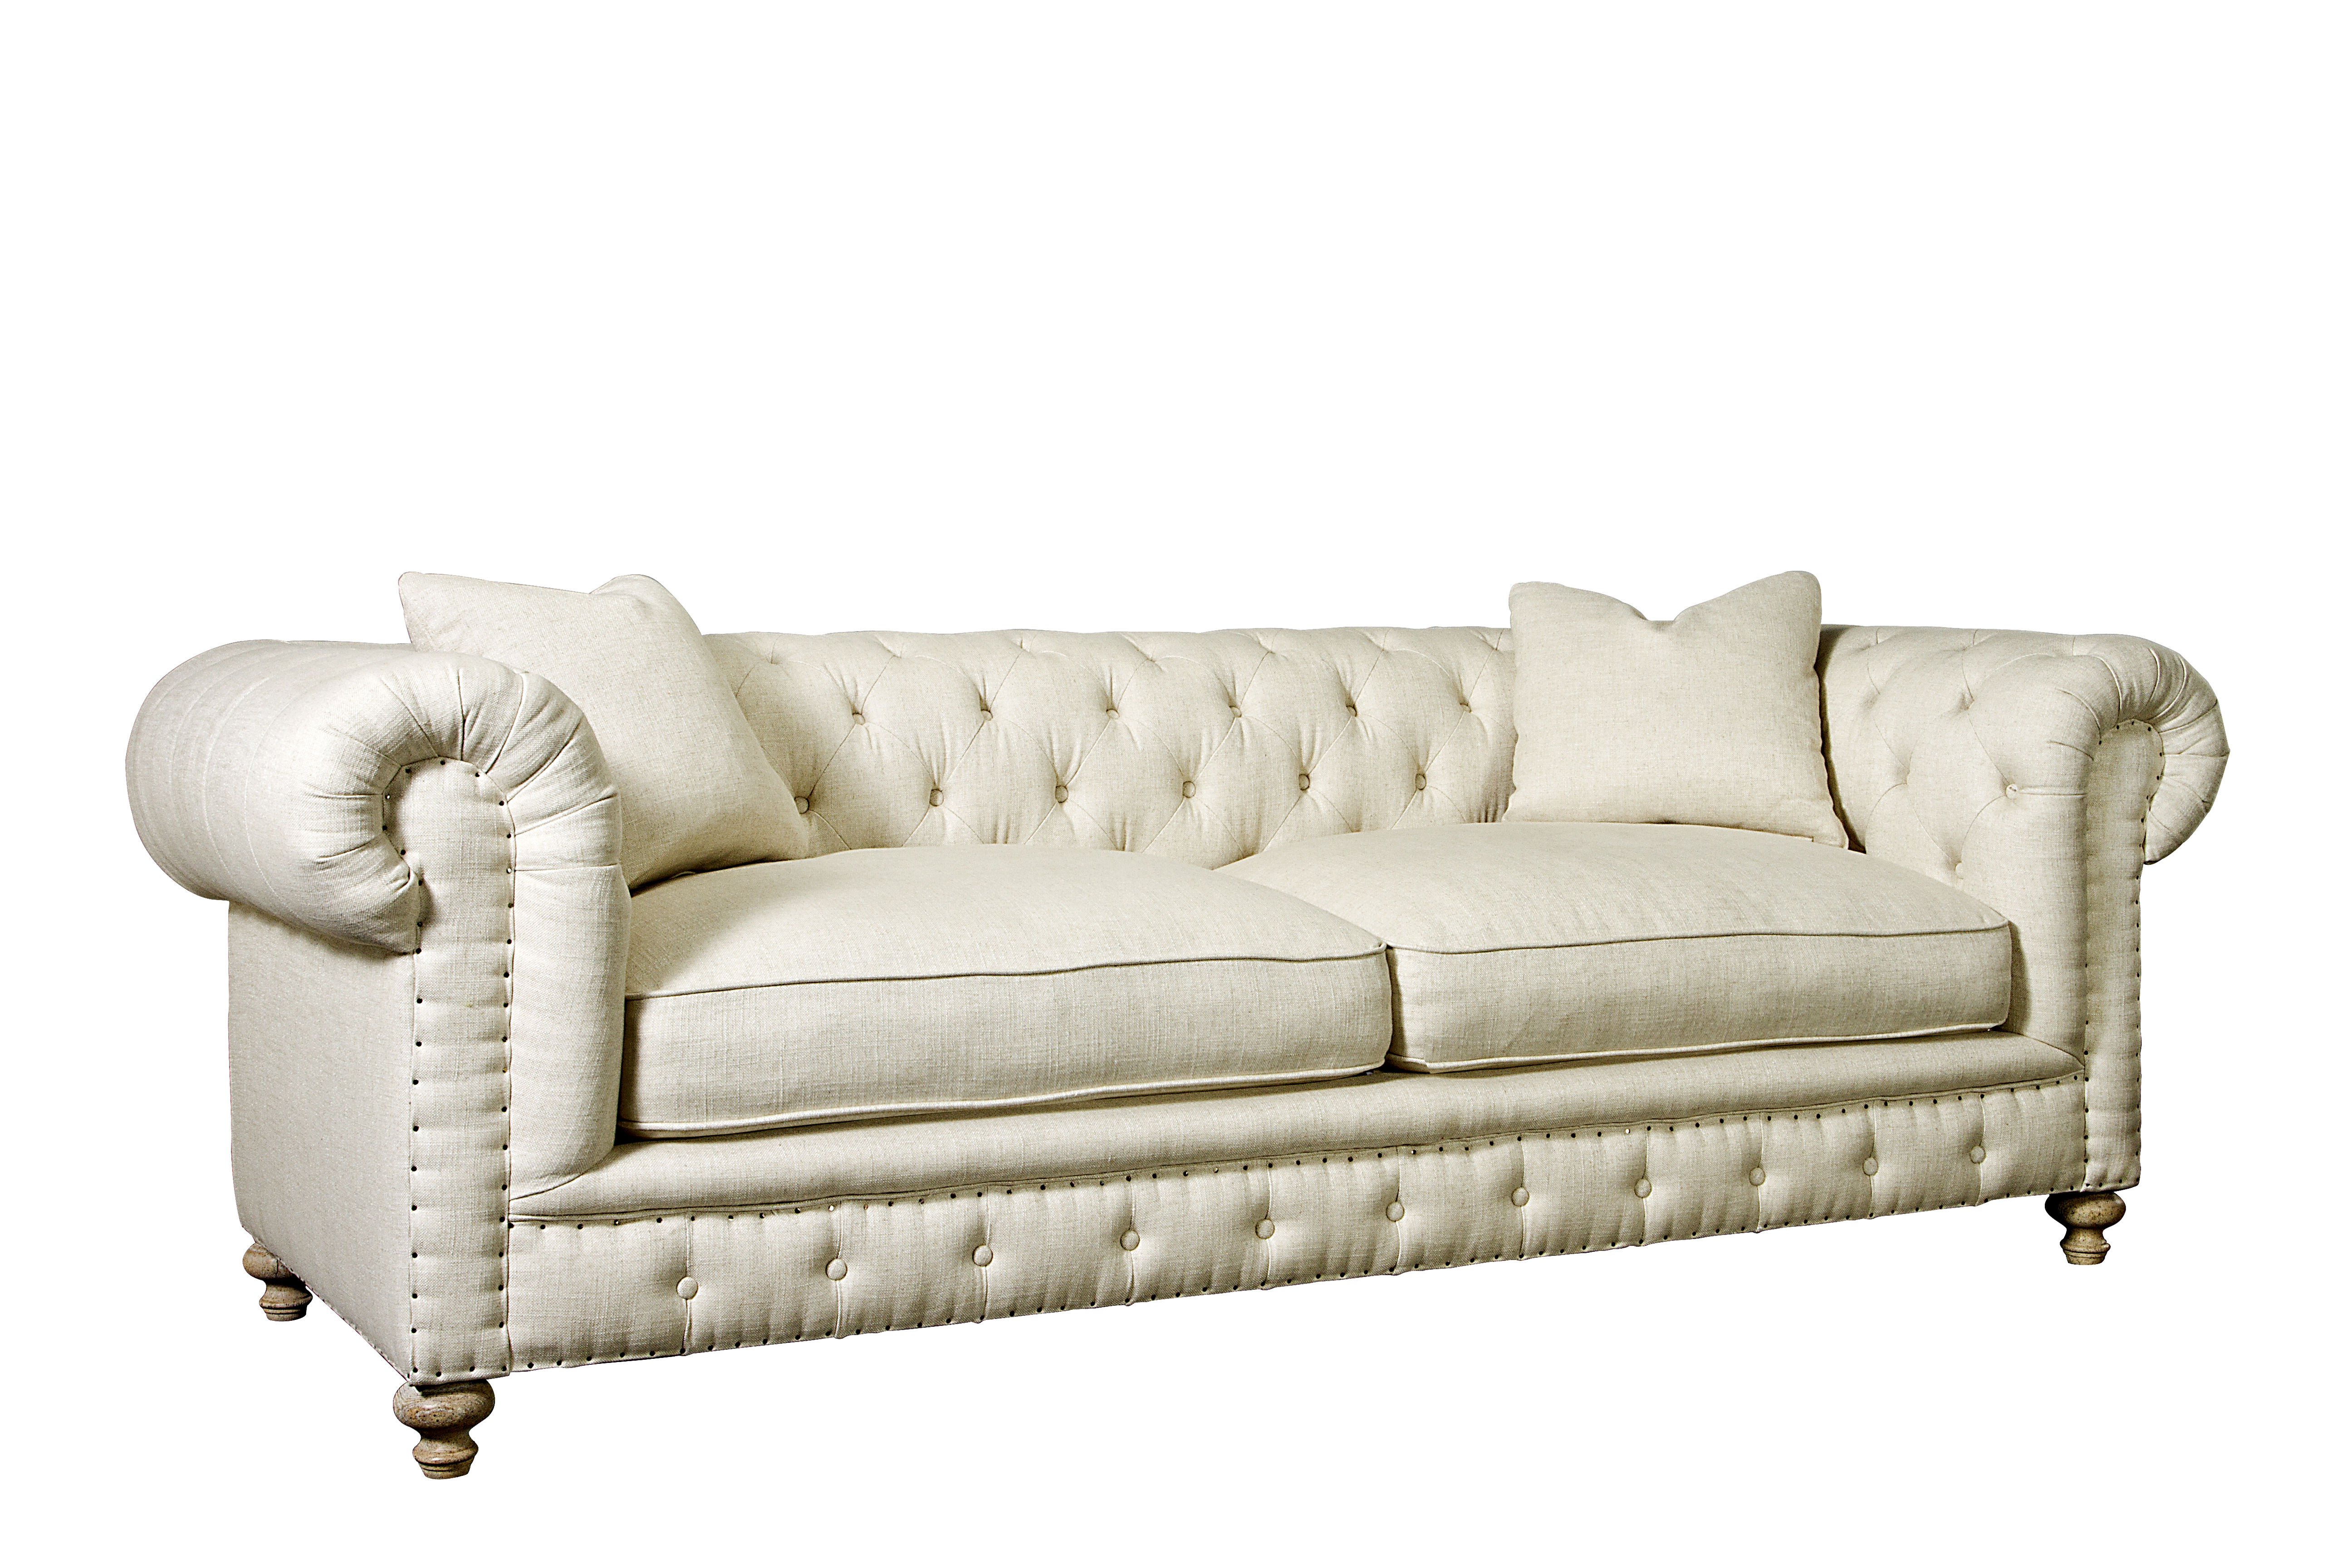 Charmant Spectra Home Greenwich Tribecca Natural Sofa Click To Enlarge ...